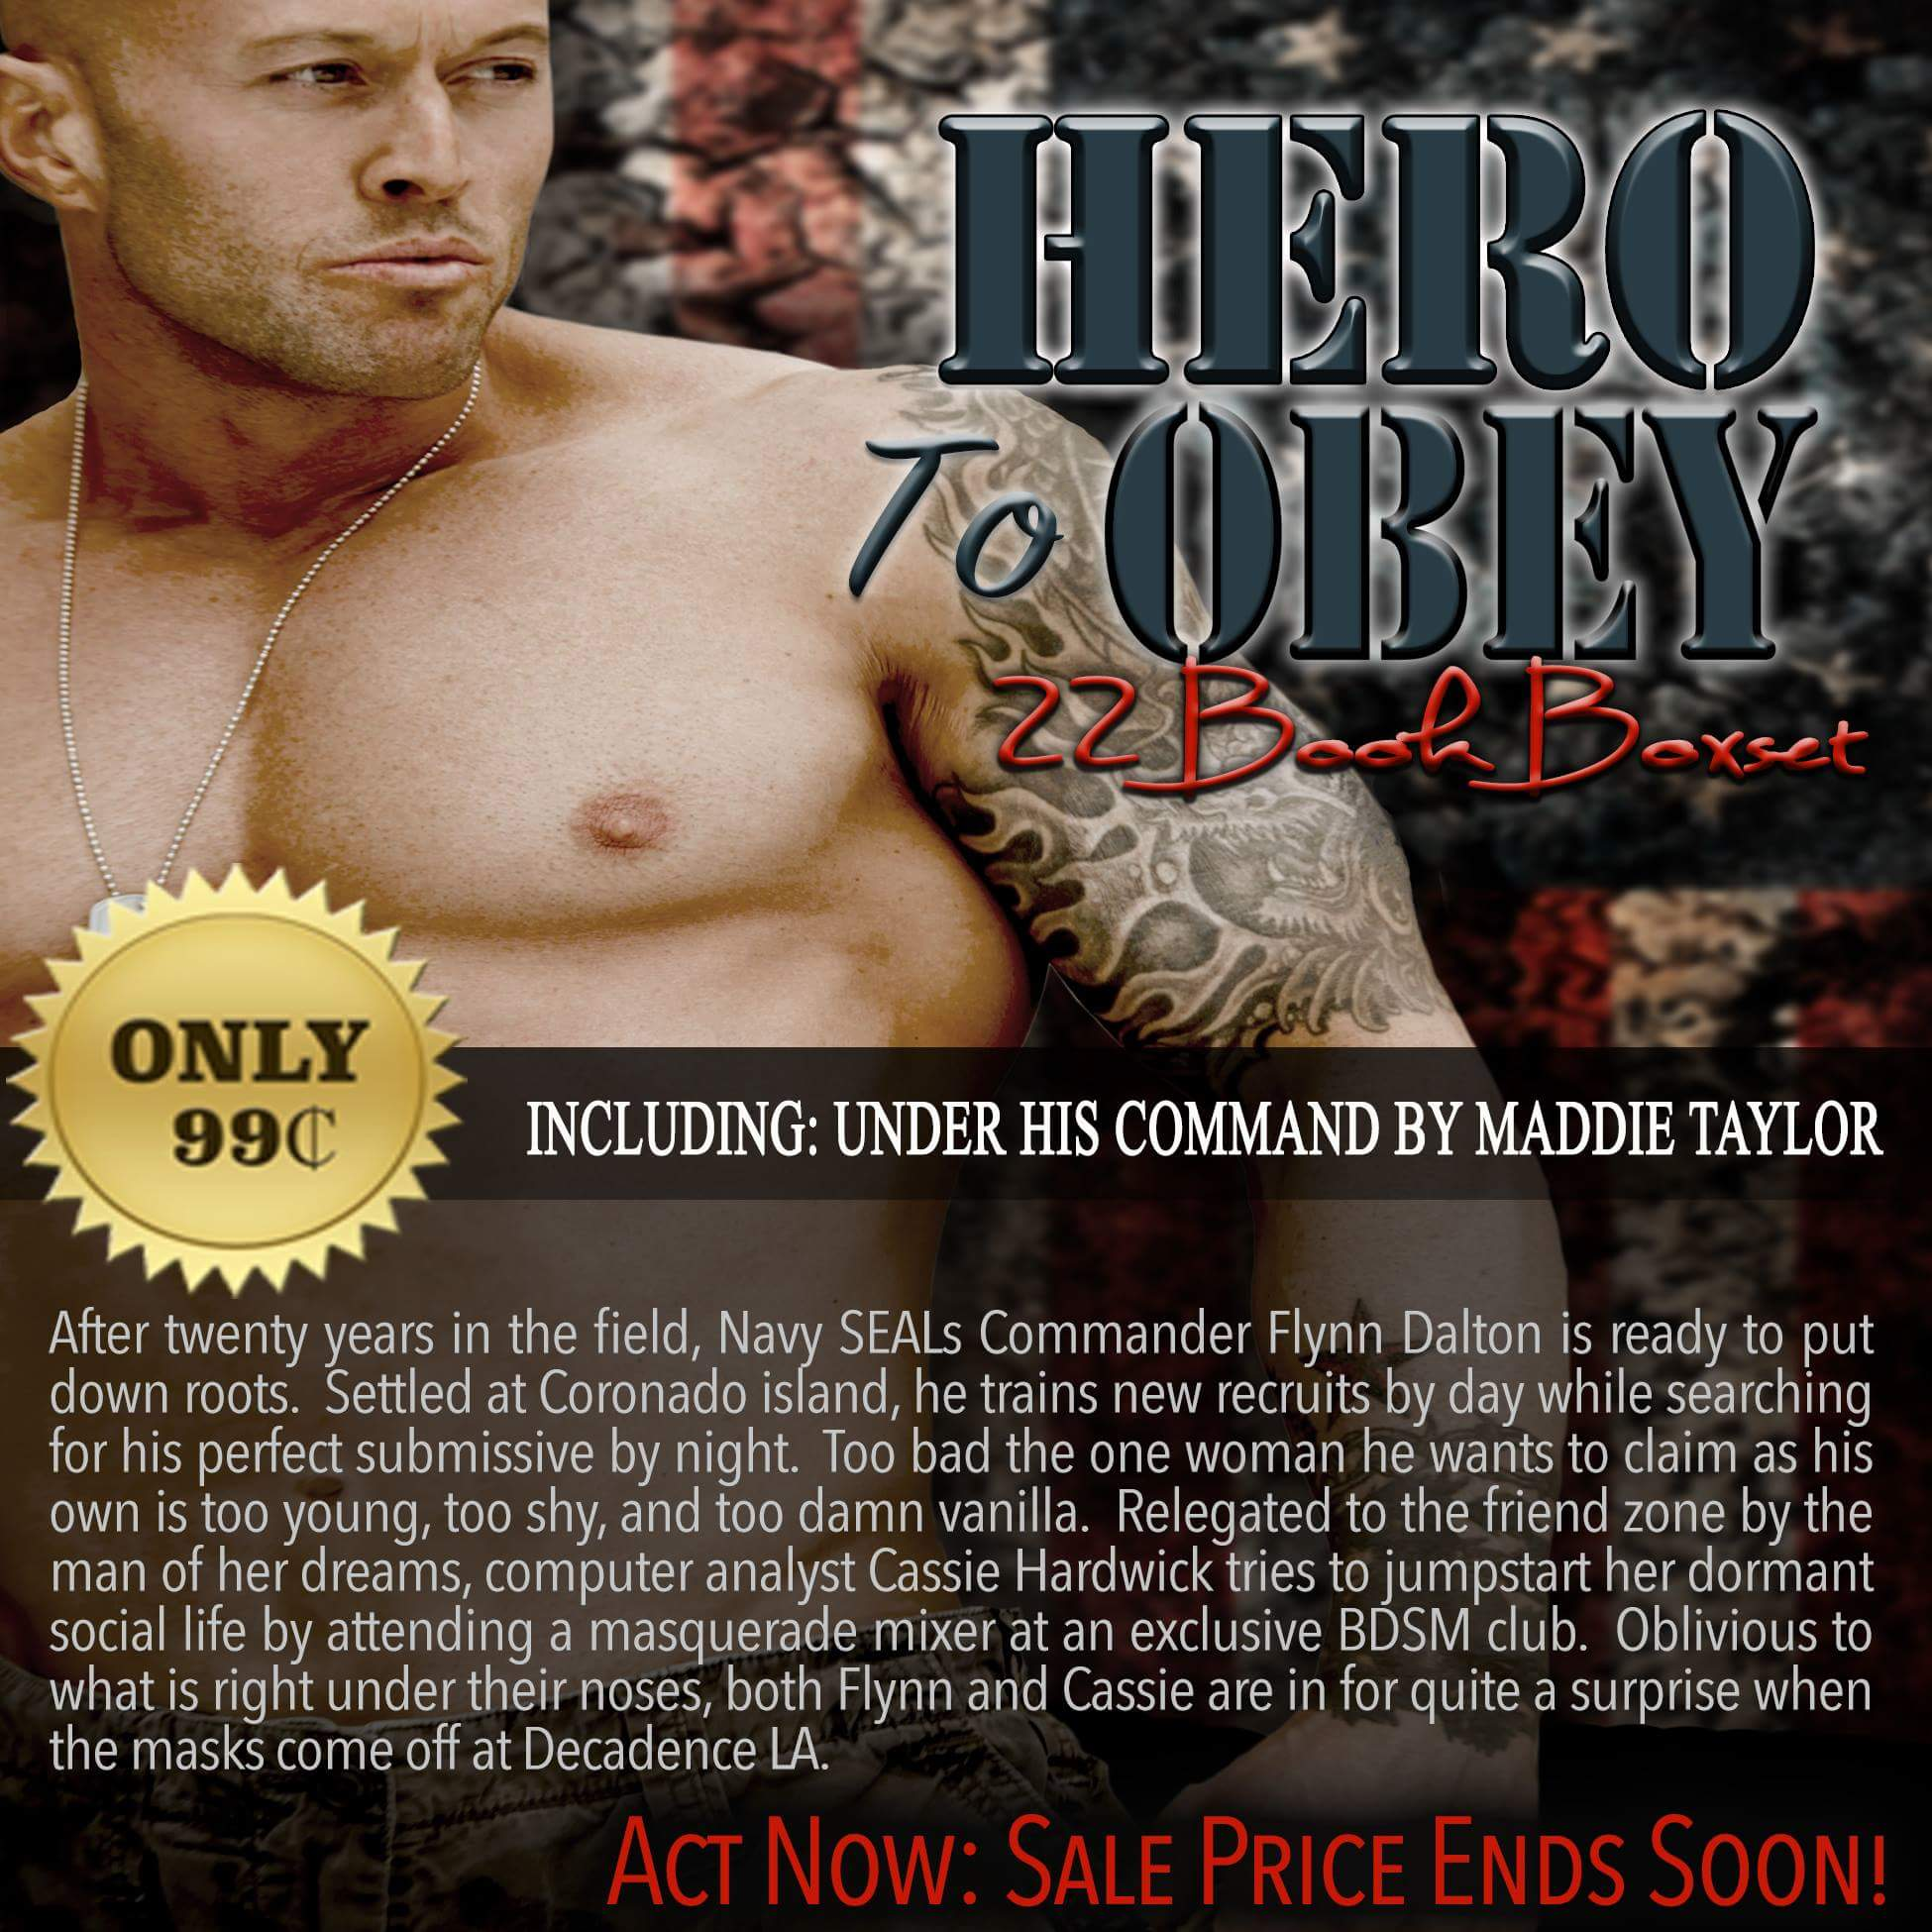 Hero To Obey Book Cover Model Actor John Joseph Quinlan by Maddie Taylor #JohnQuinlan #Hero2obey